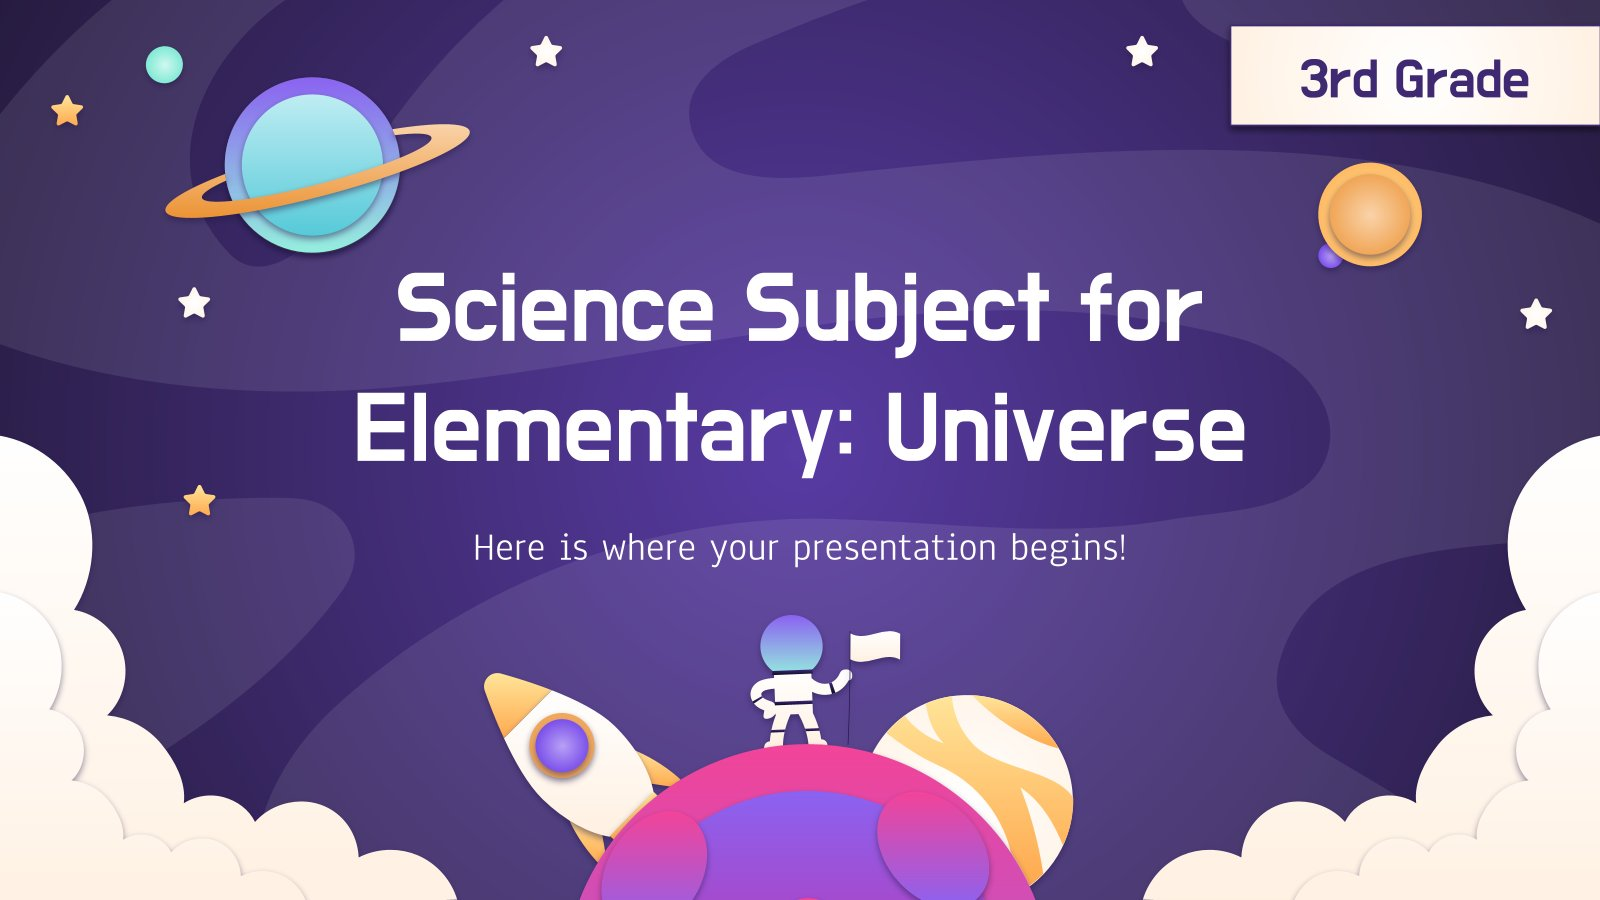 Science Subject for Elementary - 3rd Grade: Universe presentation template